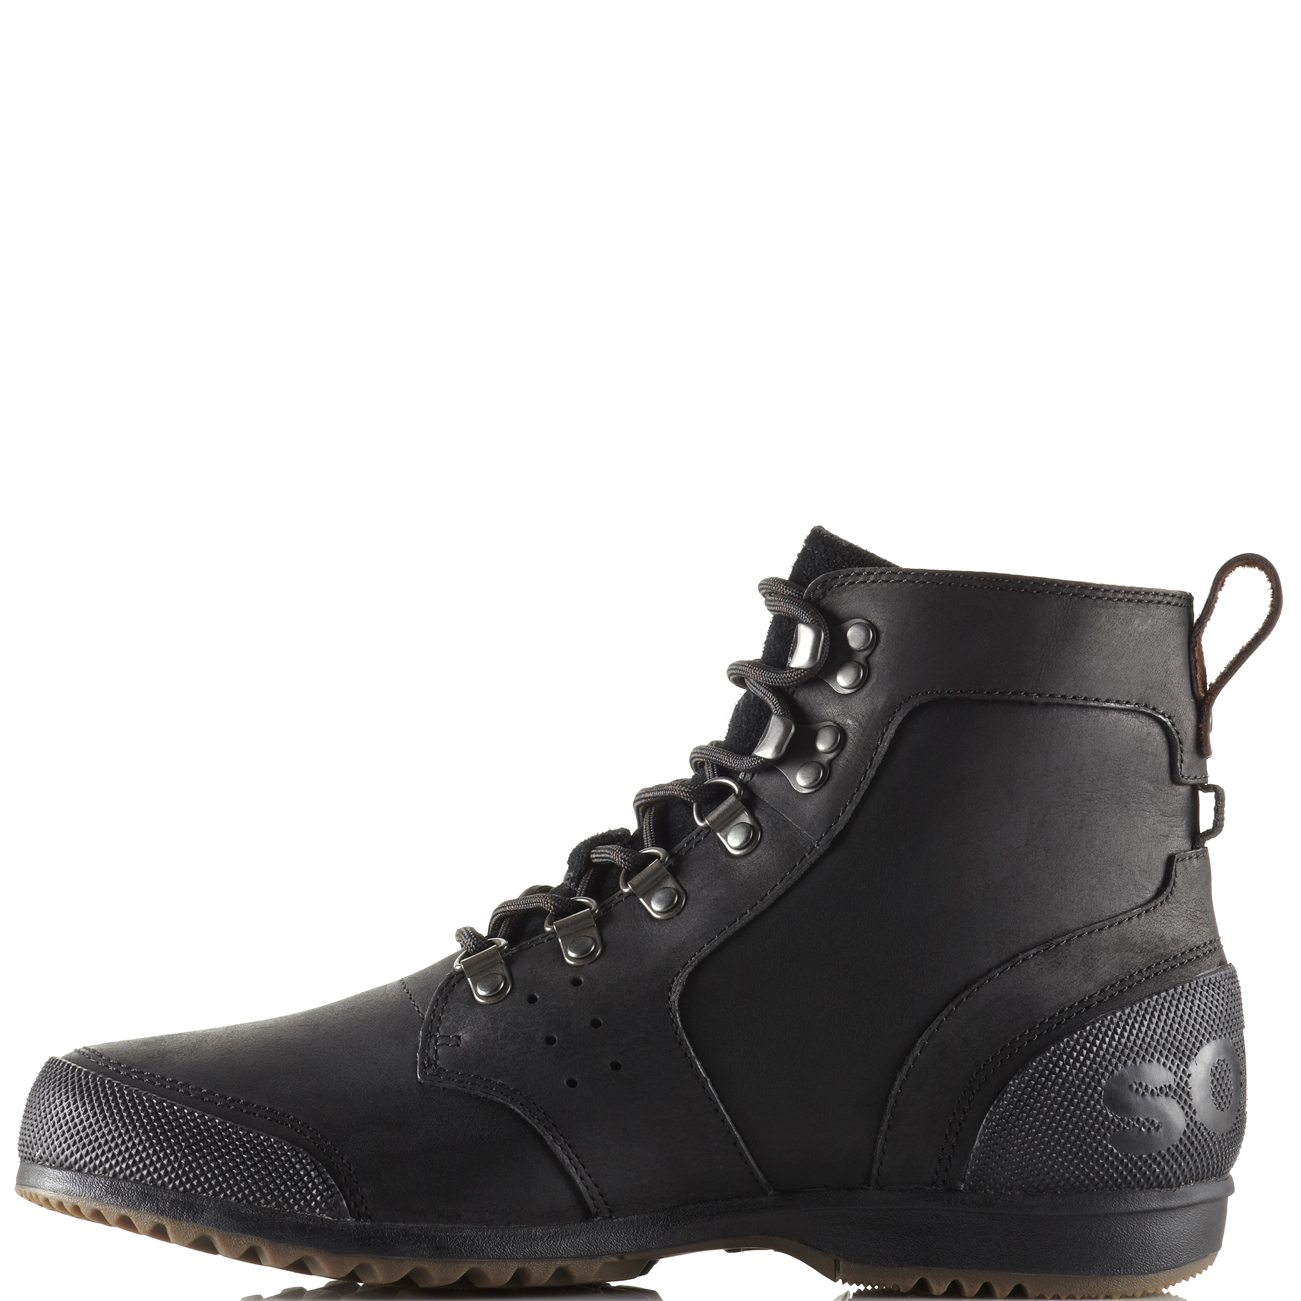 e032853451c Details about Mens Sorel Ankeny Mid Hiker Snow Waterproof Lace Up Winter  Ankle Boots US 8-13